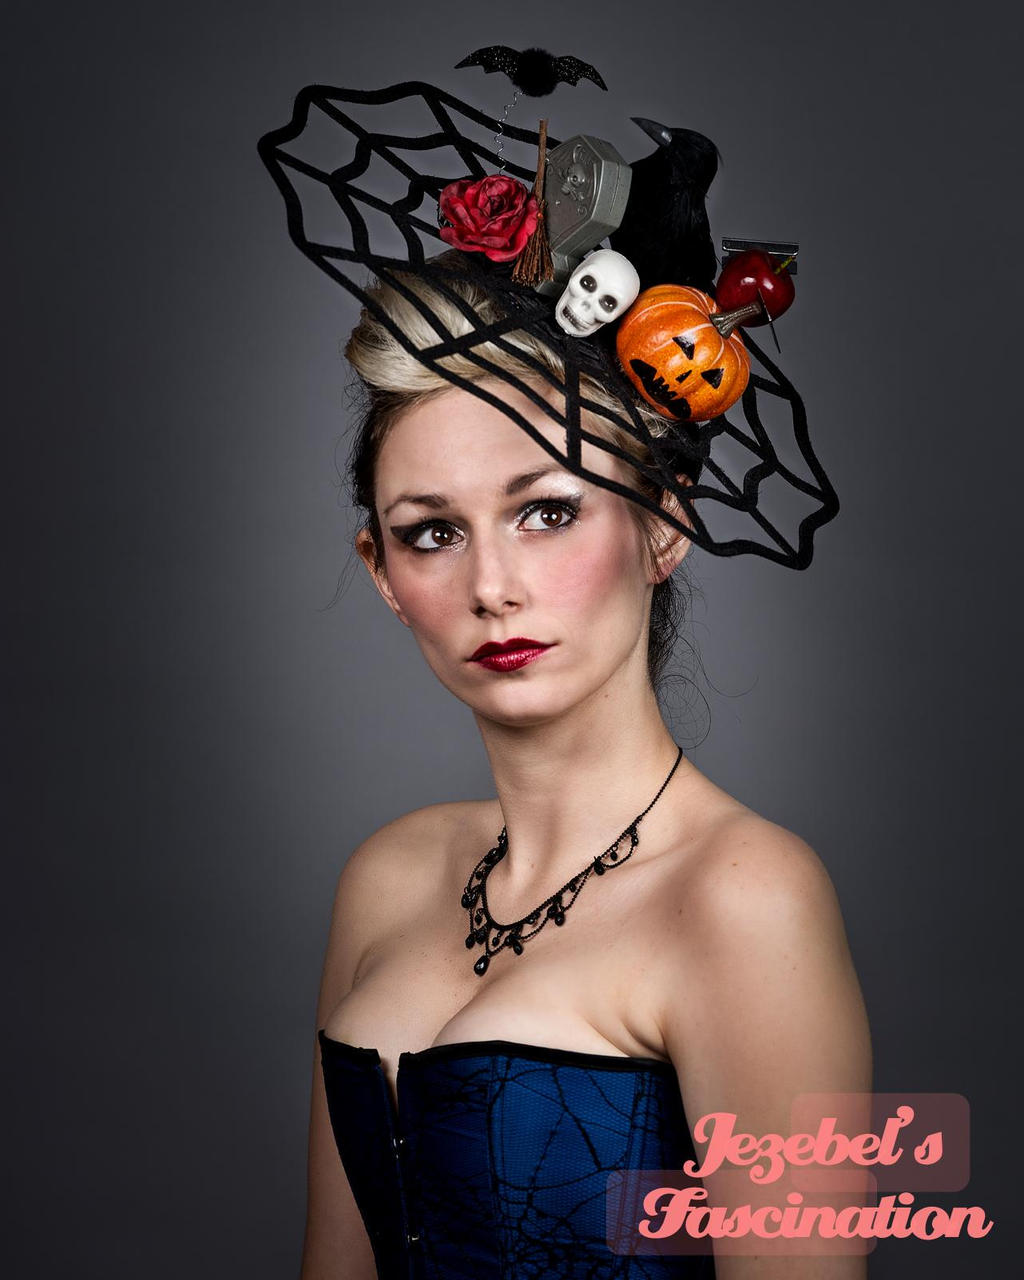 Jezebel's Fascination - This is Halloween by JezebelsFascination